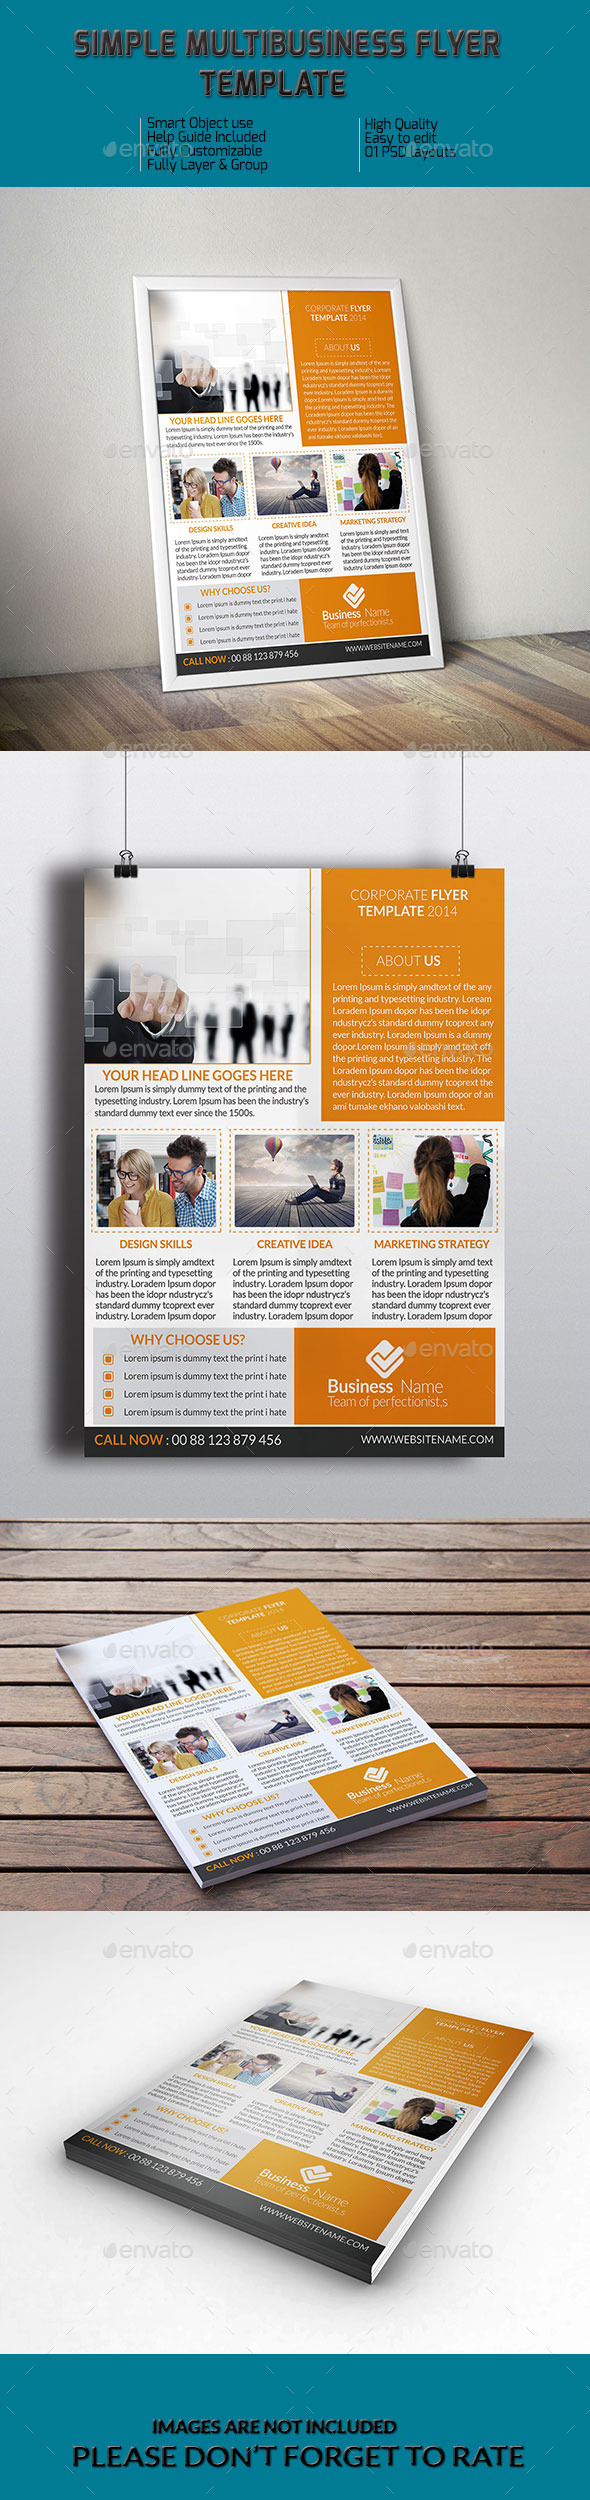 Simple MultiBusiness Flyer Template - Corporate Flyers